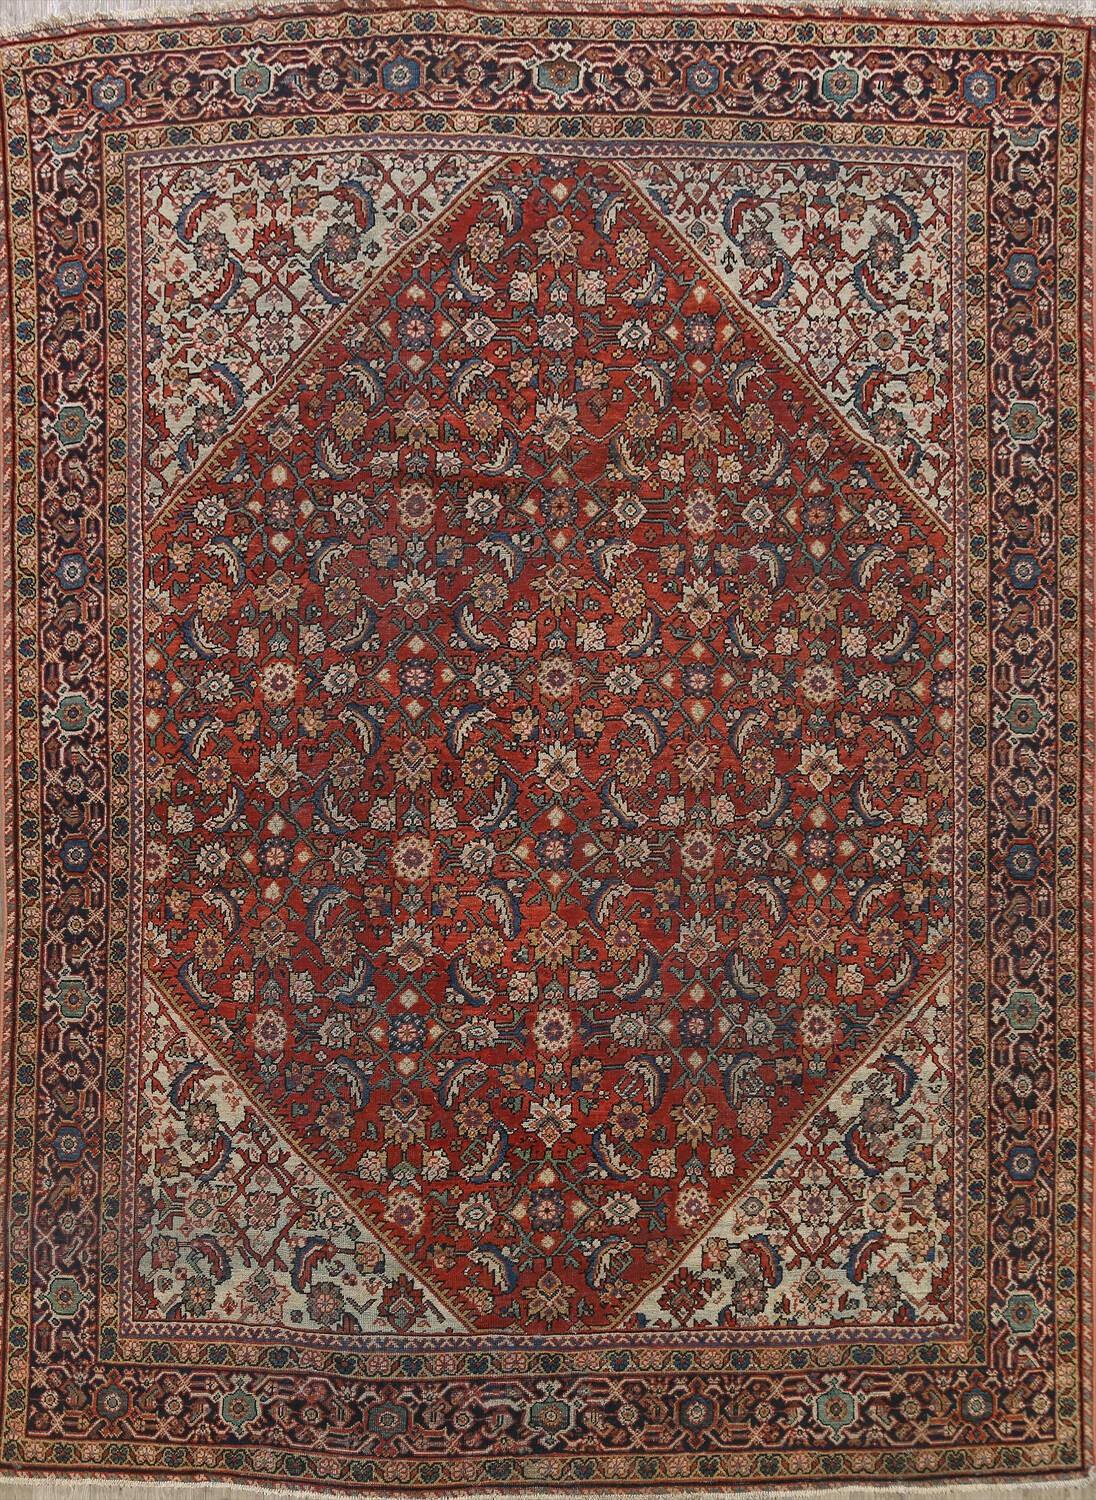 Pre-1900 Vegetable Dye Sultanabad Persian Area Rug 9x11 image 1